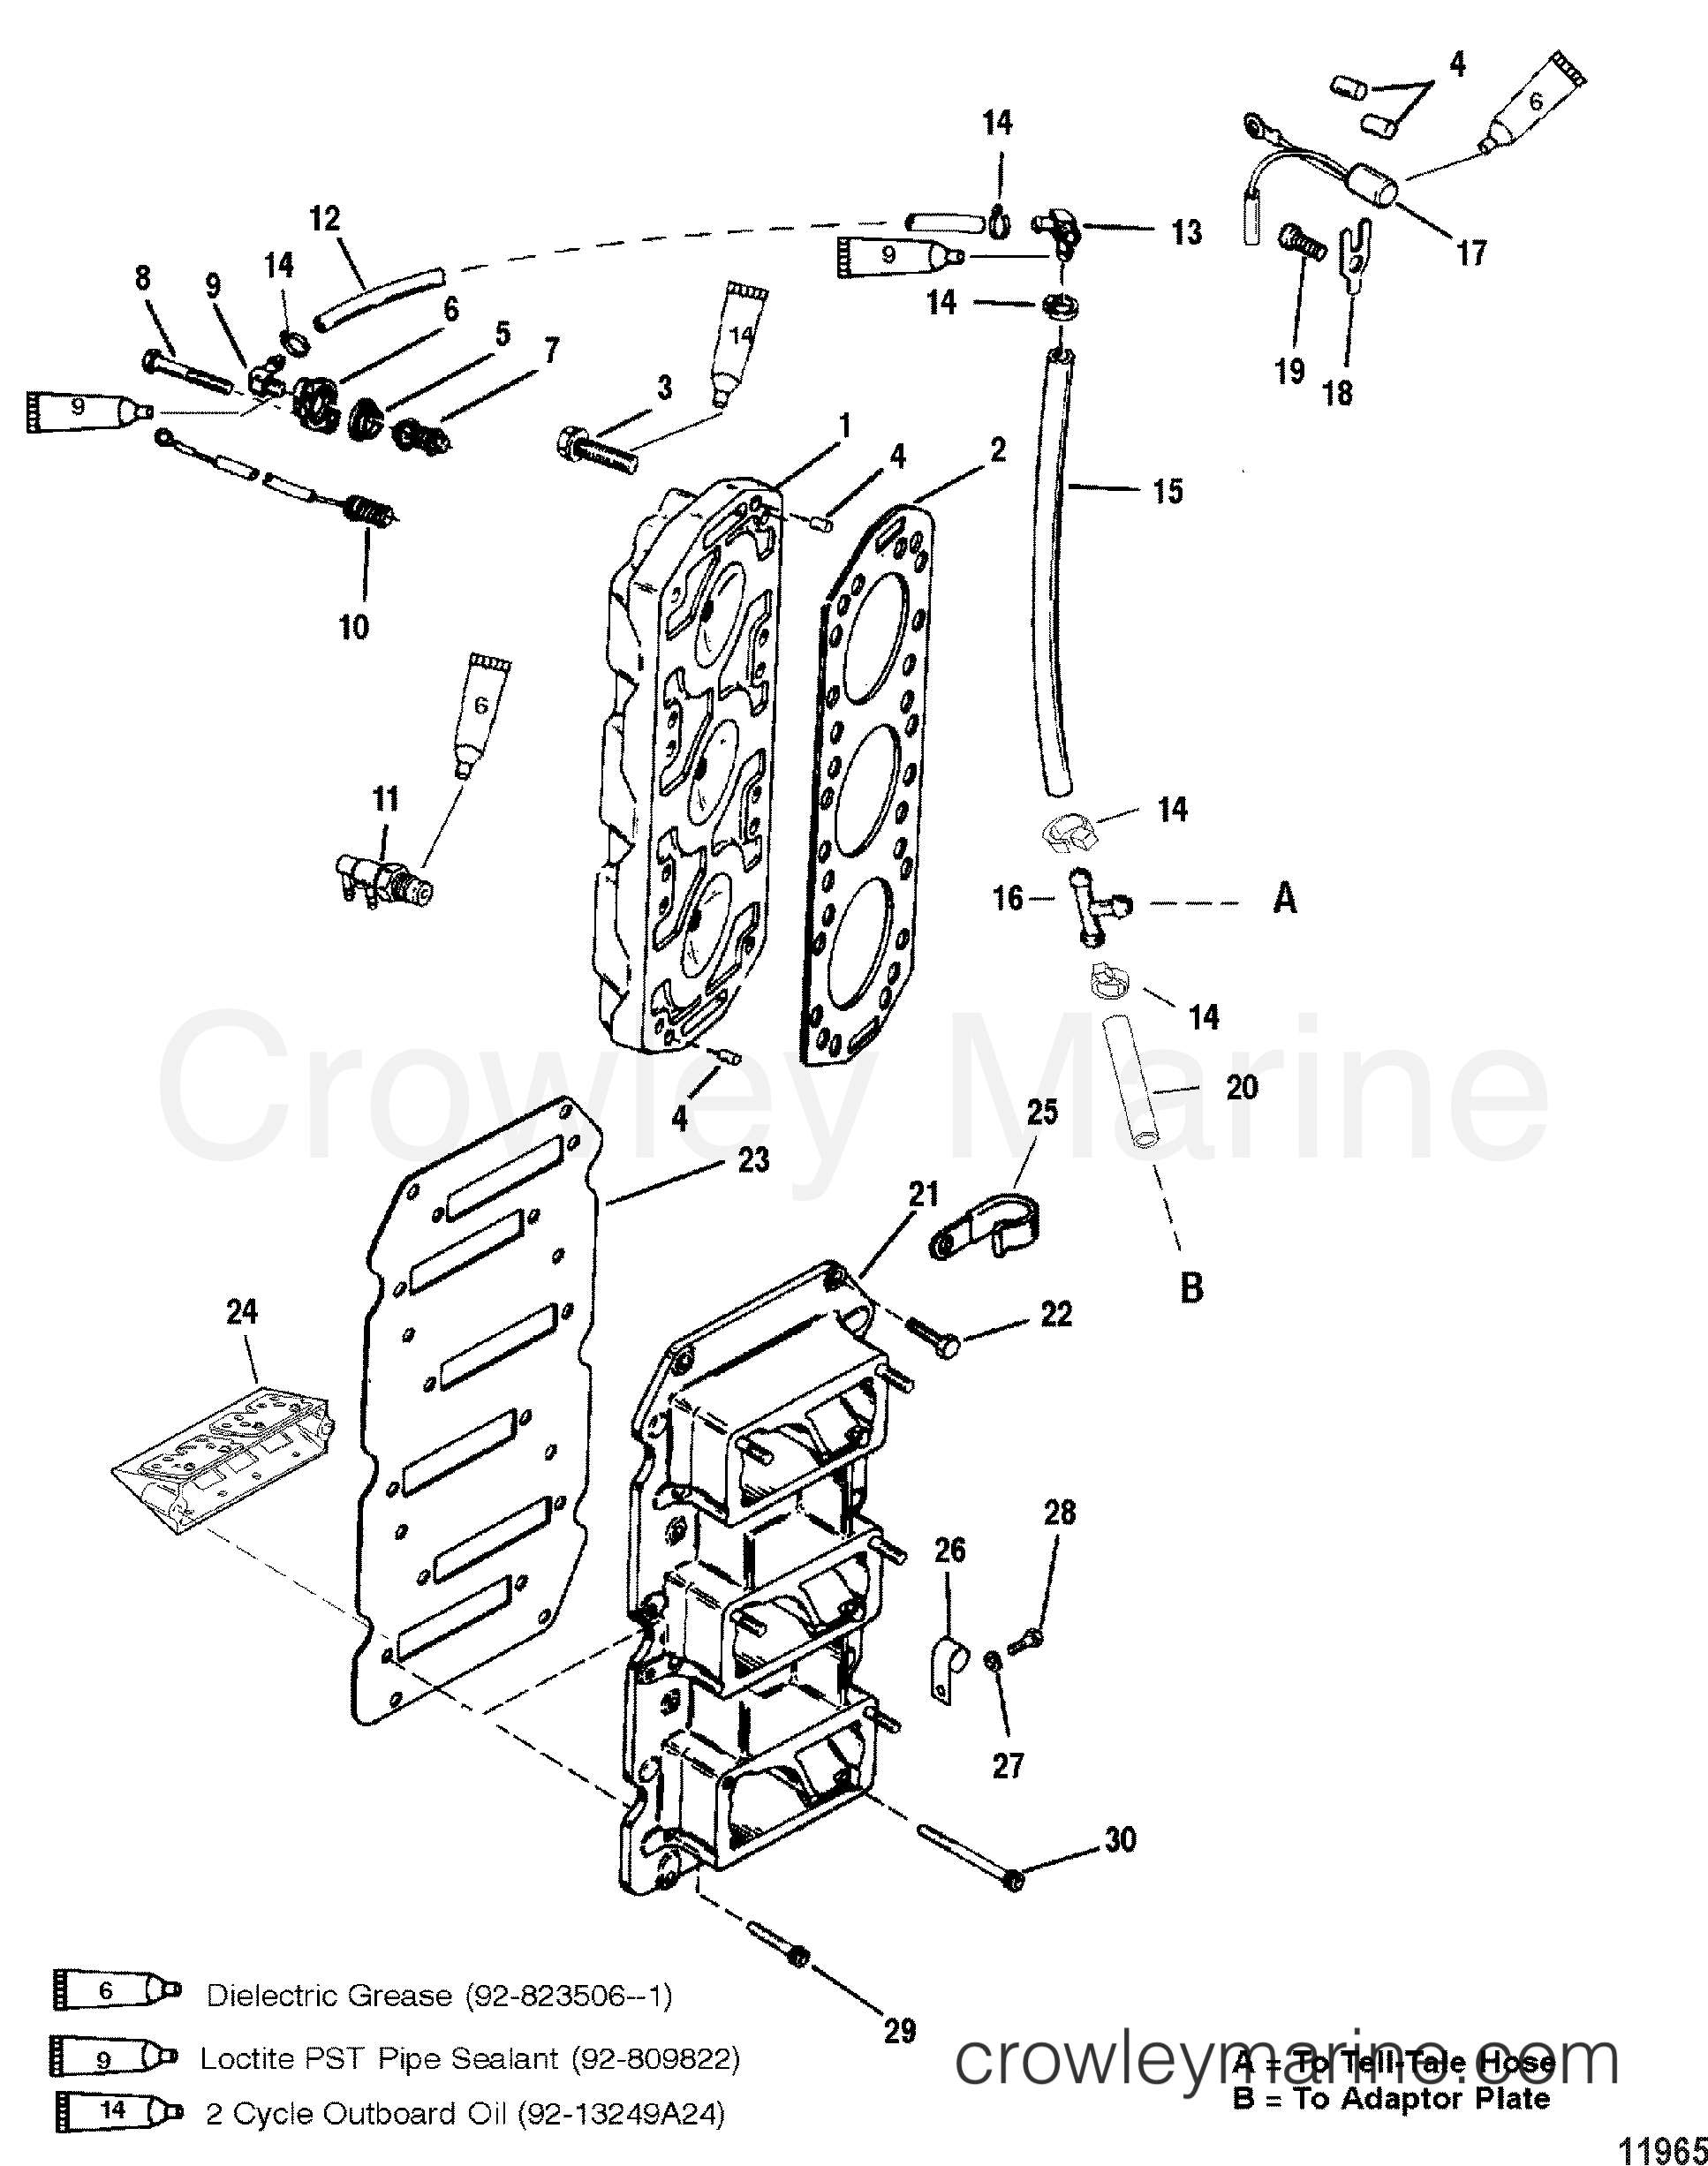 reed block and cylinder head